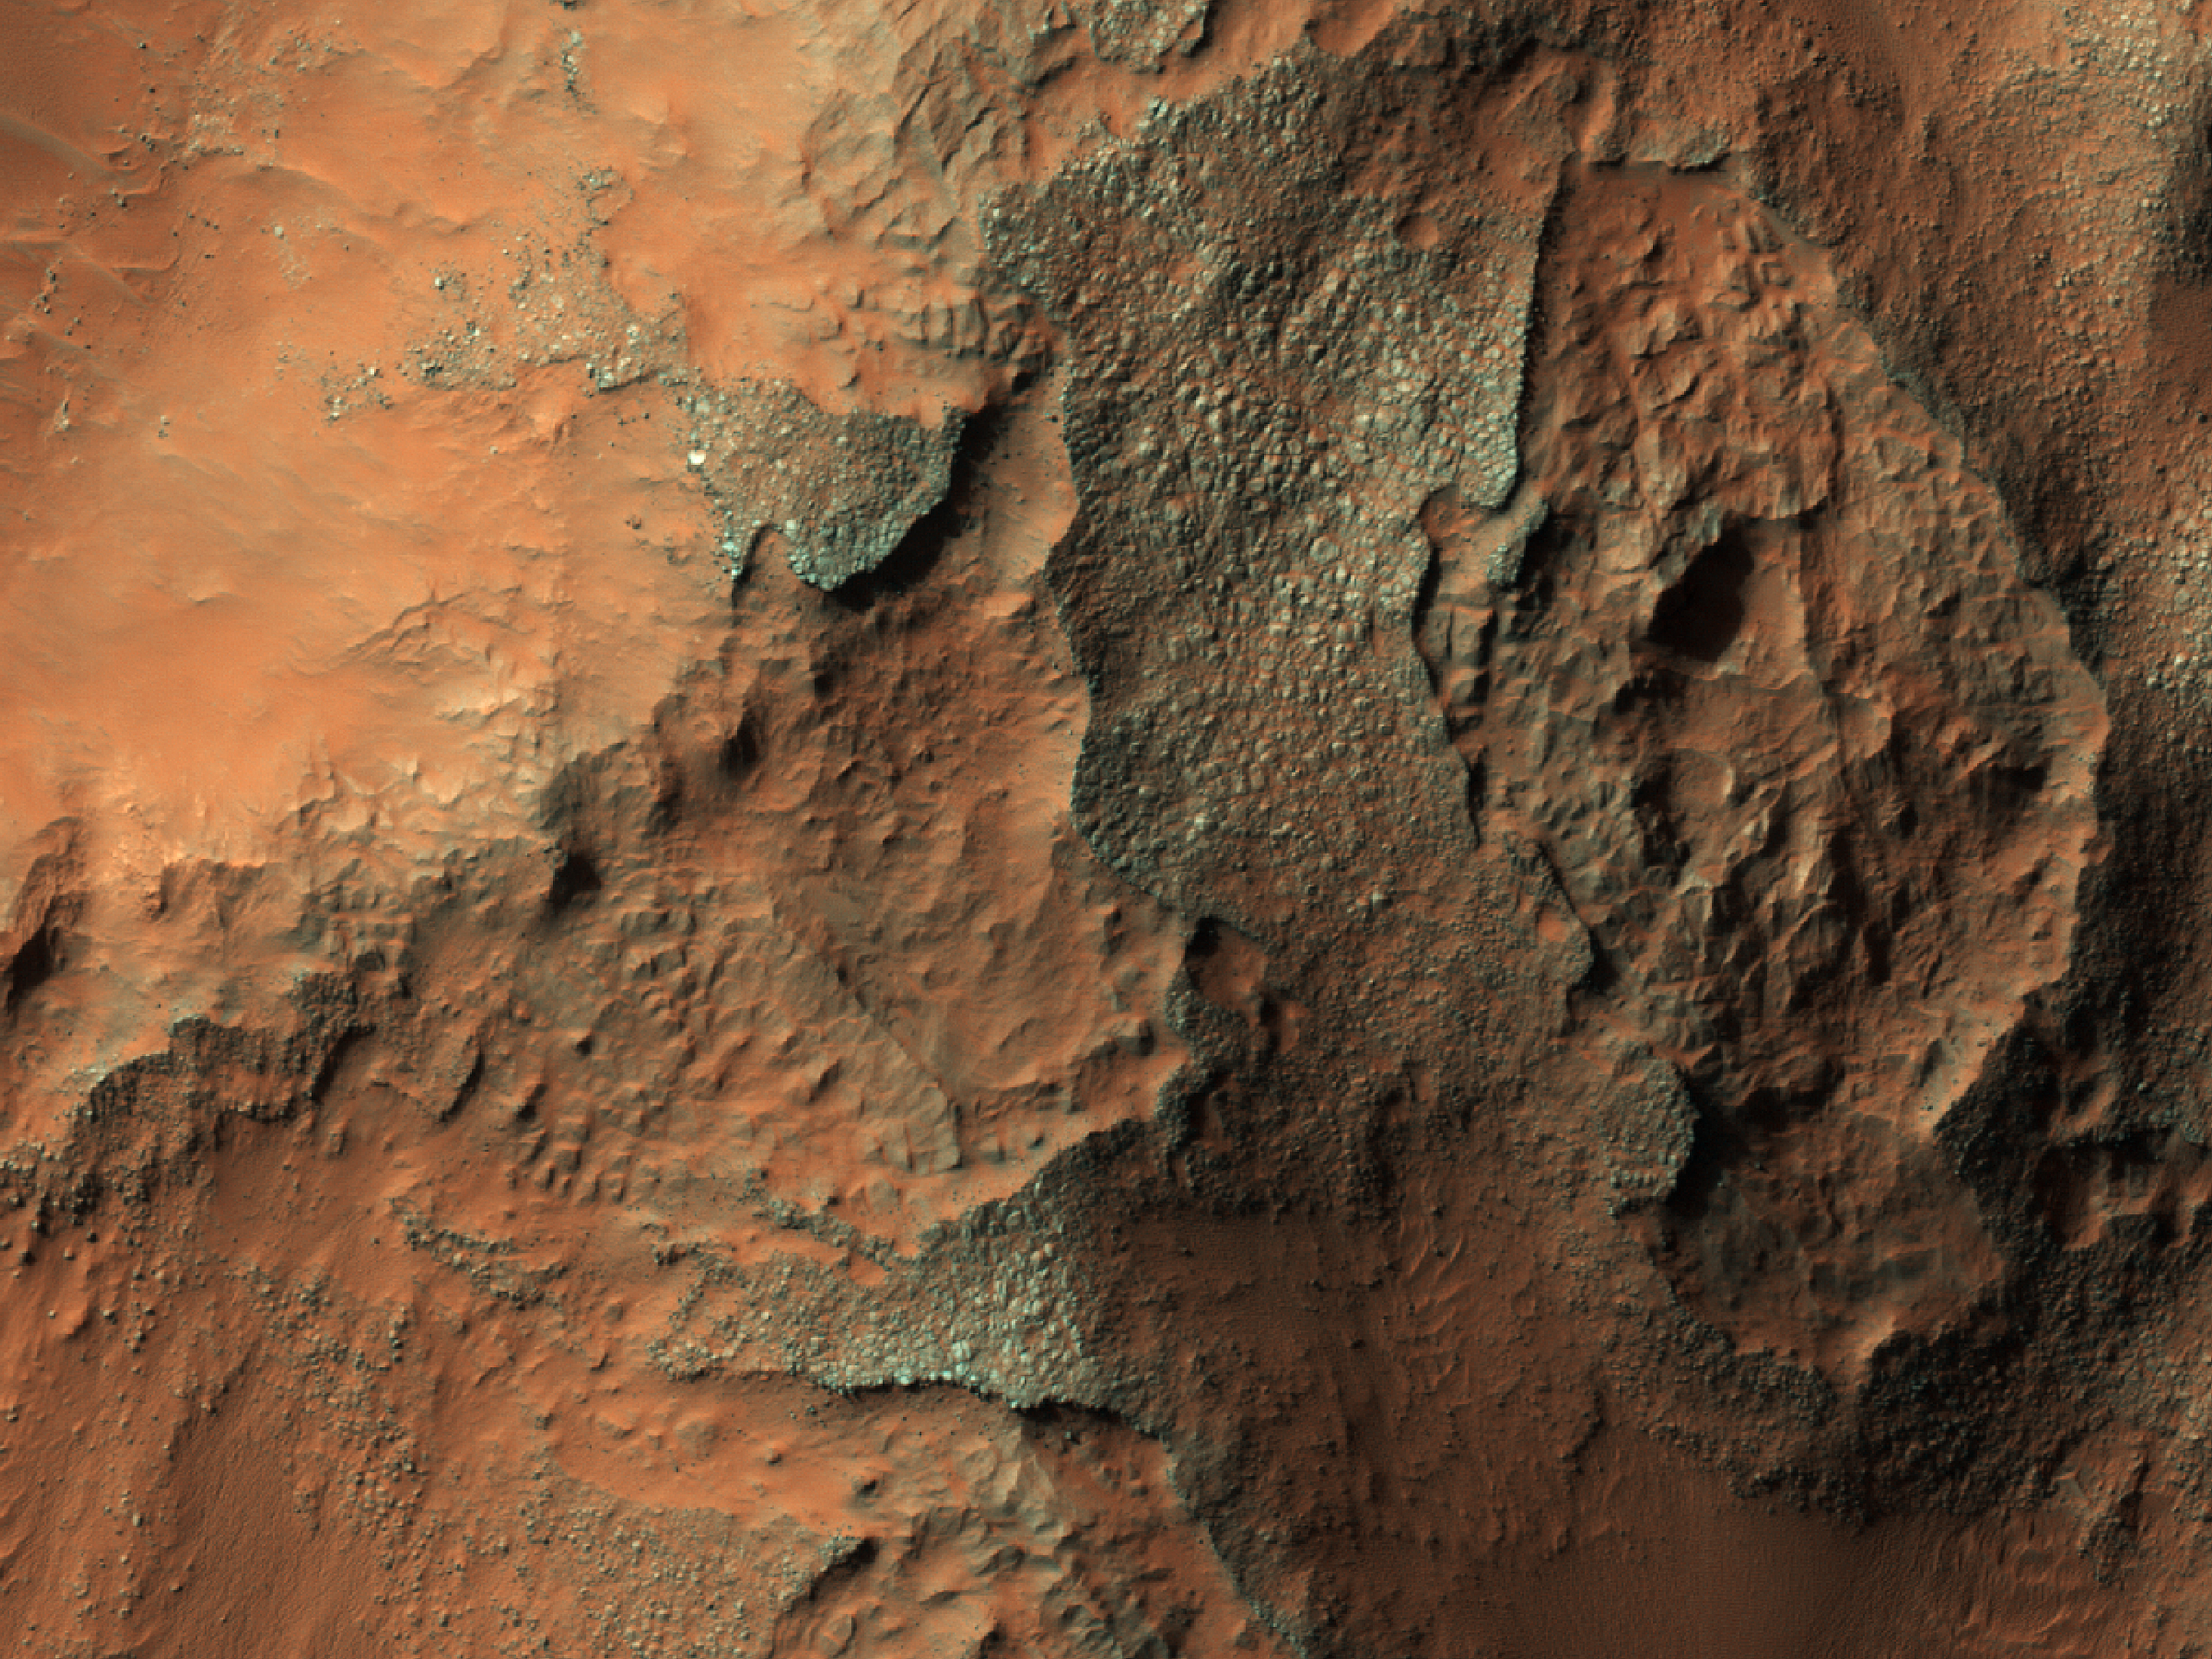 Holden Crater Impact Ejecta